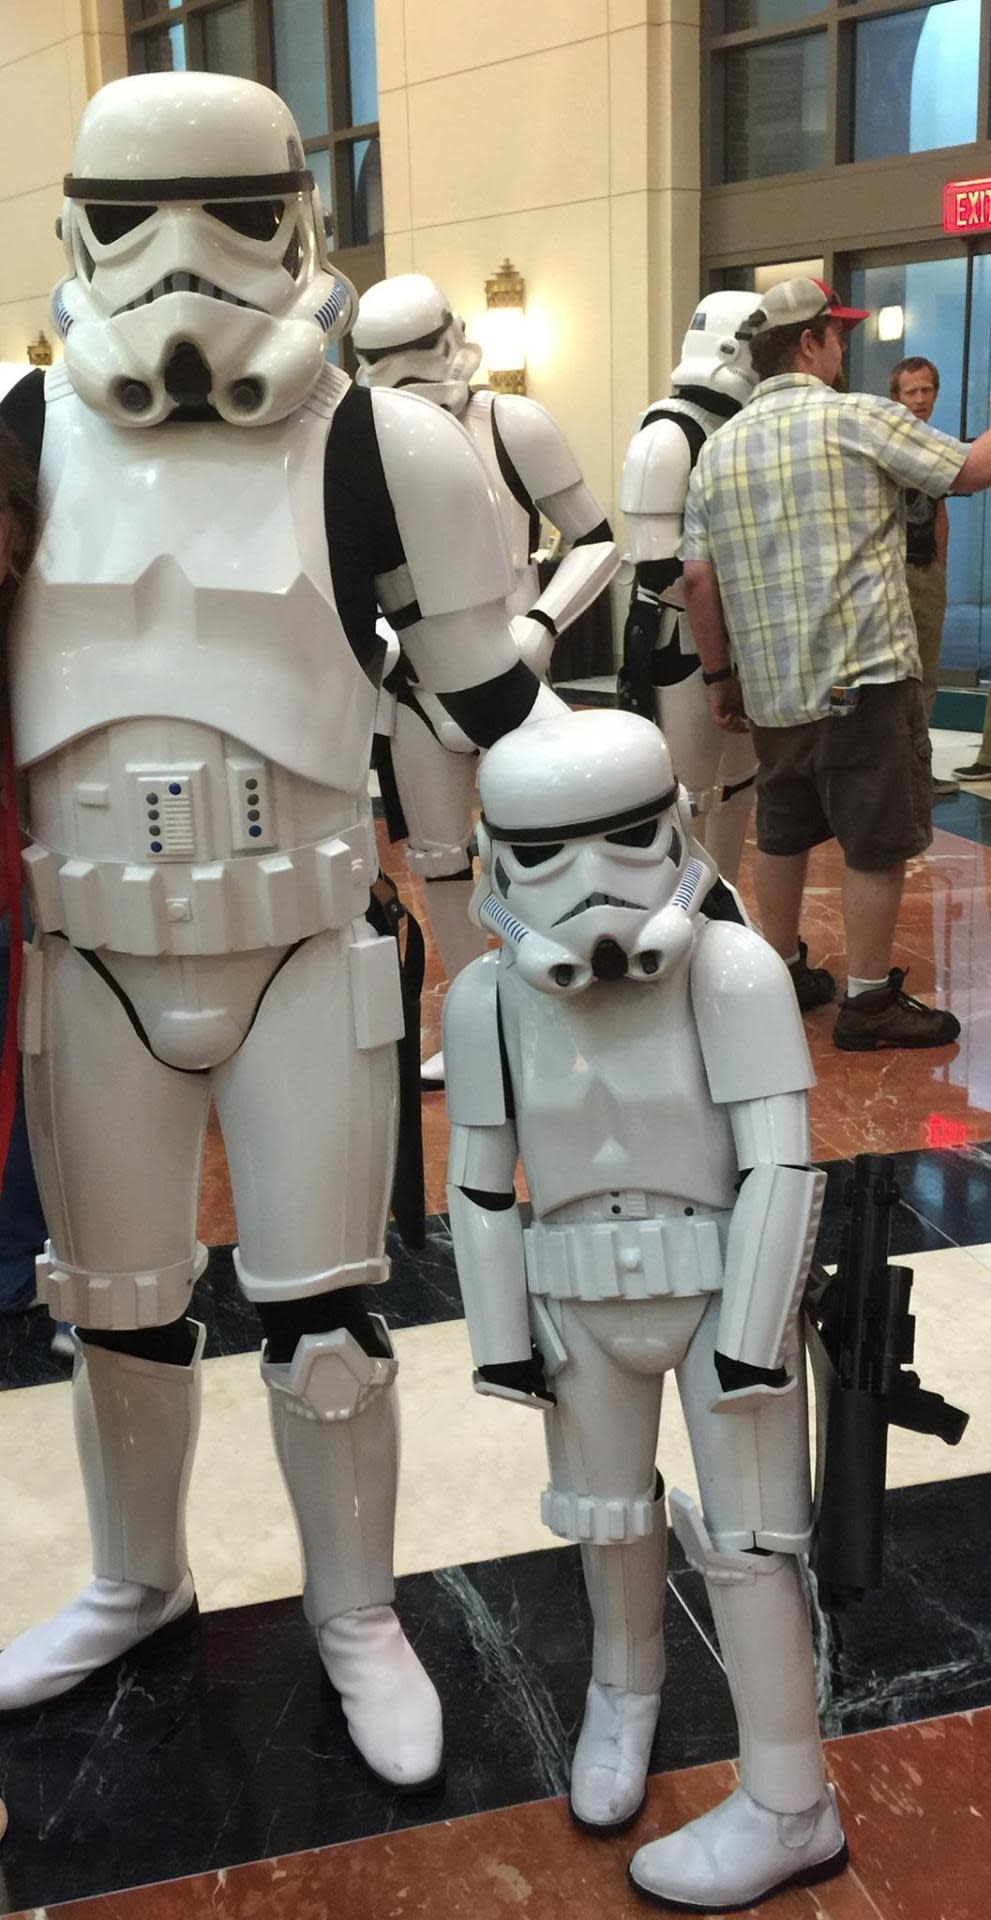 """<p>An attendee at the """"Weird Al"""" Yankovic concert snapped a photo of Layla in full costume with a fellow 501st Stormtrooper. (Photo: <a href=""""https://www.facebook.com/The501stLegion/photos/a.164650034751.117031.17637574751/10153566883249752/?type=1&theater"""" rel=""""nofollow noopener"""" target=""""_blank"""" data-ylk=""""slk:Facebook"""" class=""""link rapid-noclick-resp"""">Facebook</a>)</p>"""